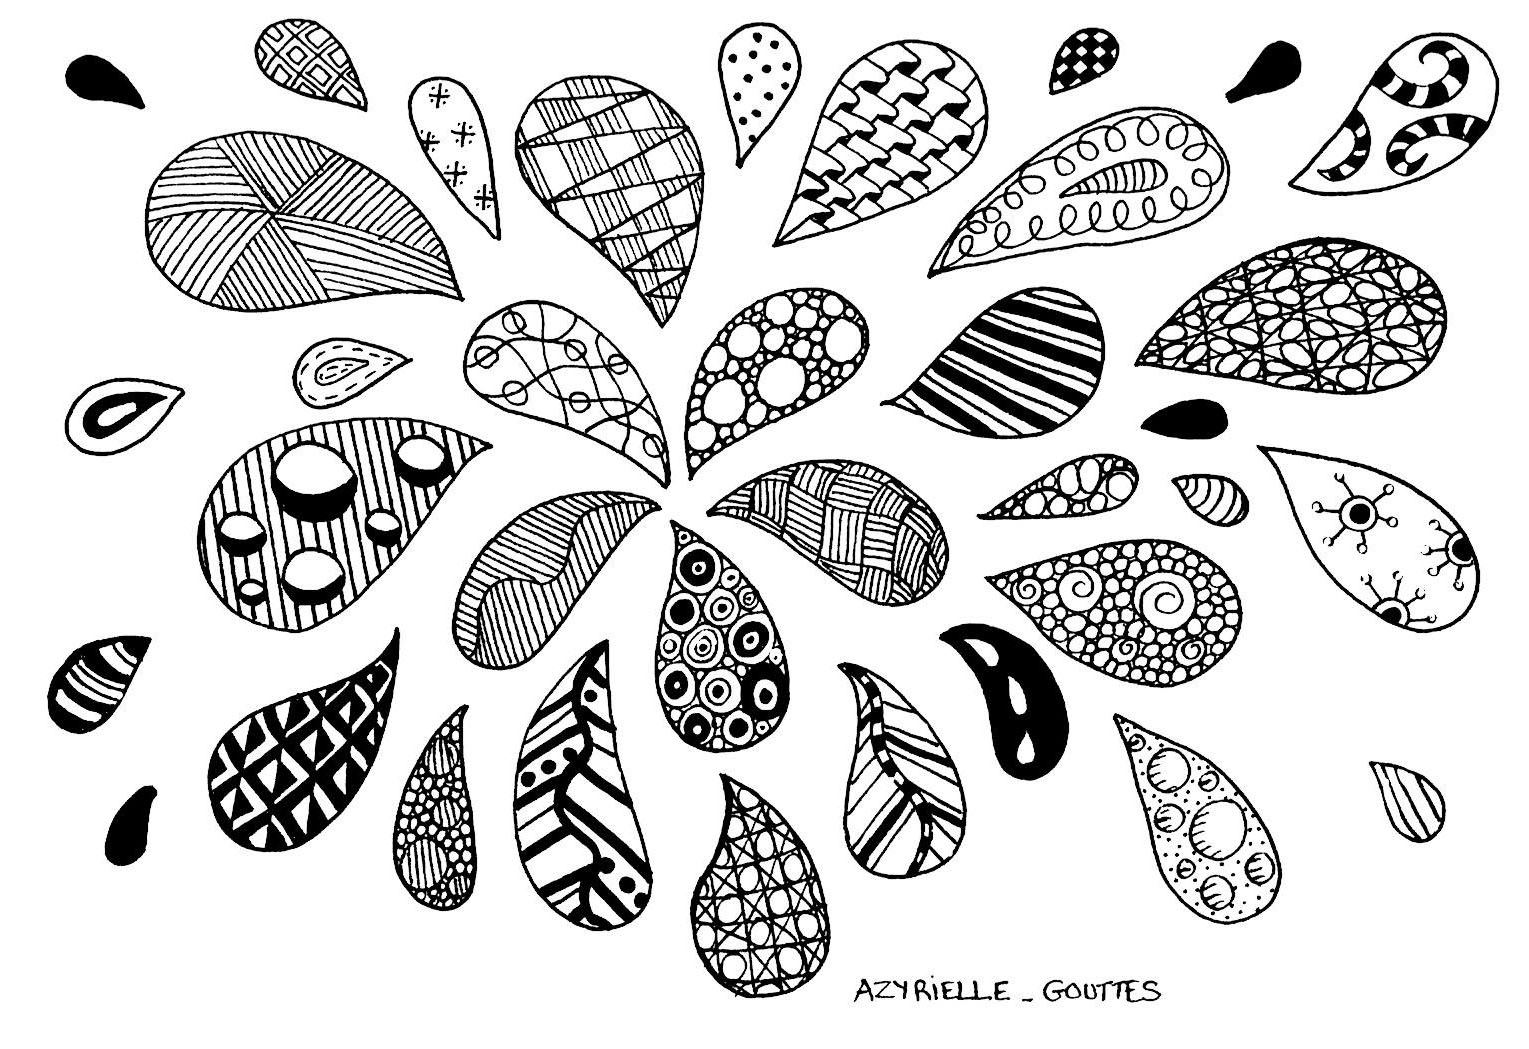 zentangle drops from the gallery zentangle artist azyrielle - Zentangle Coloring Pages